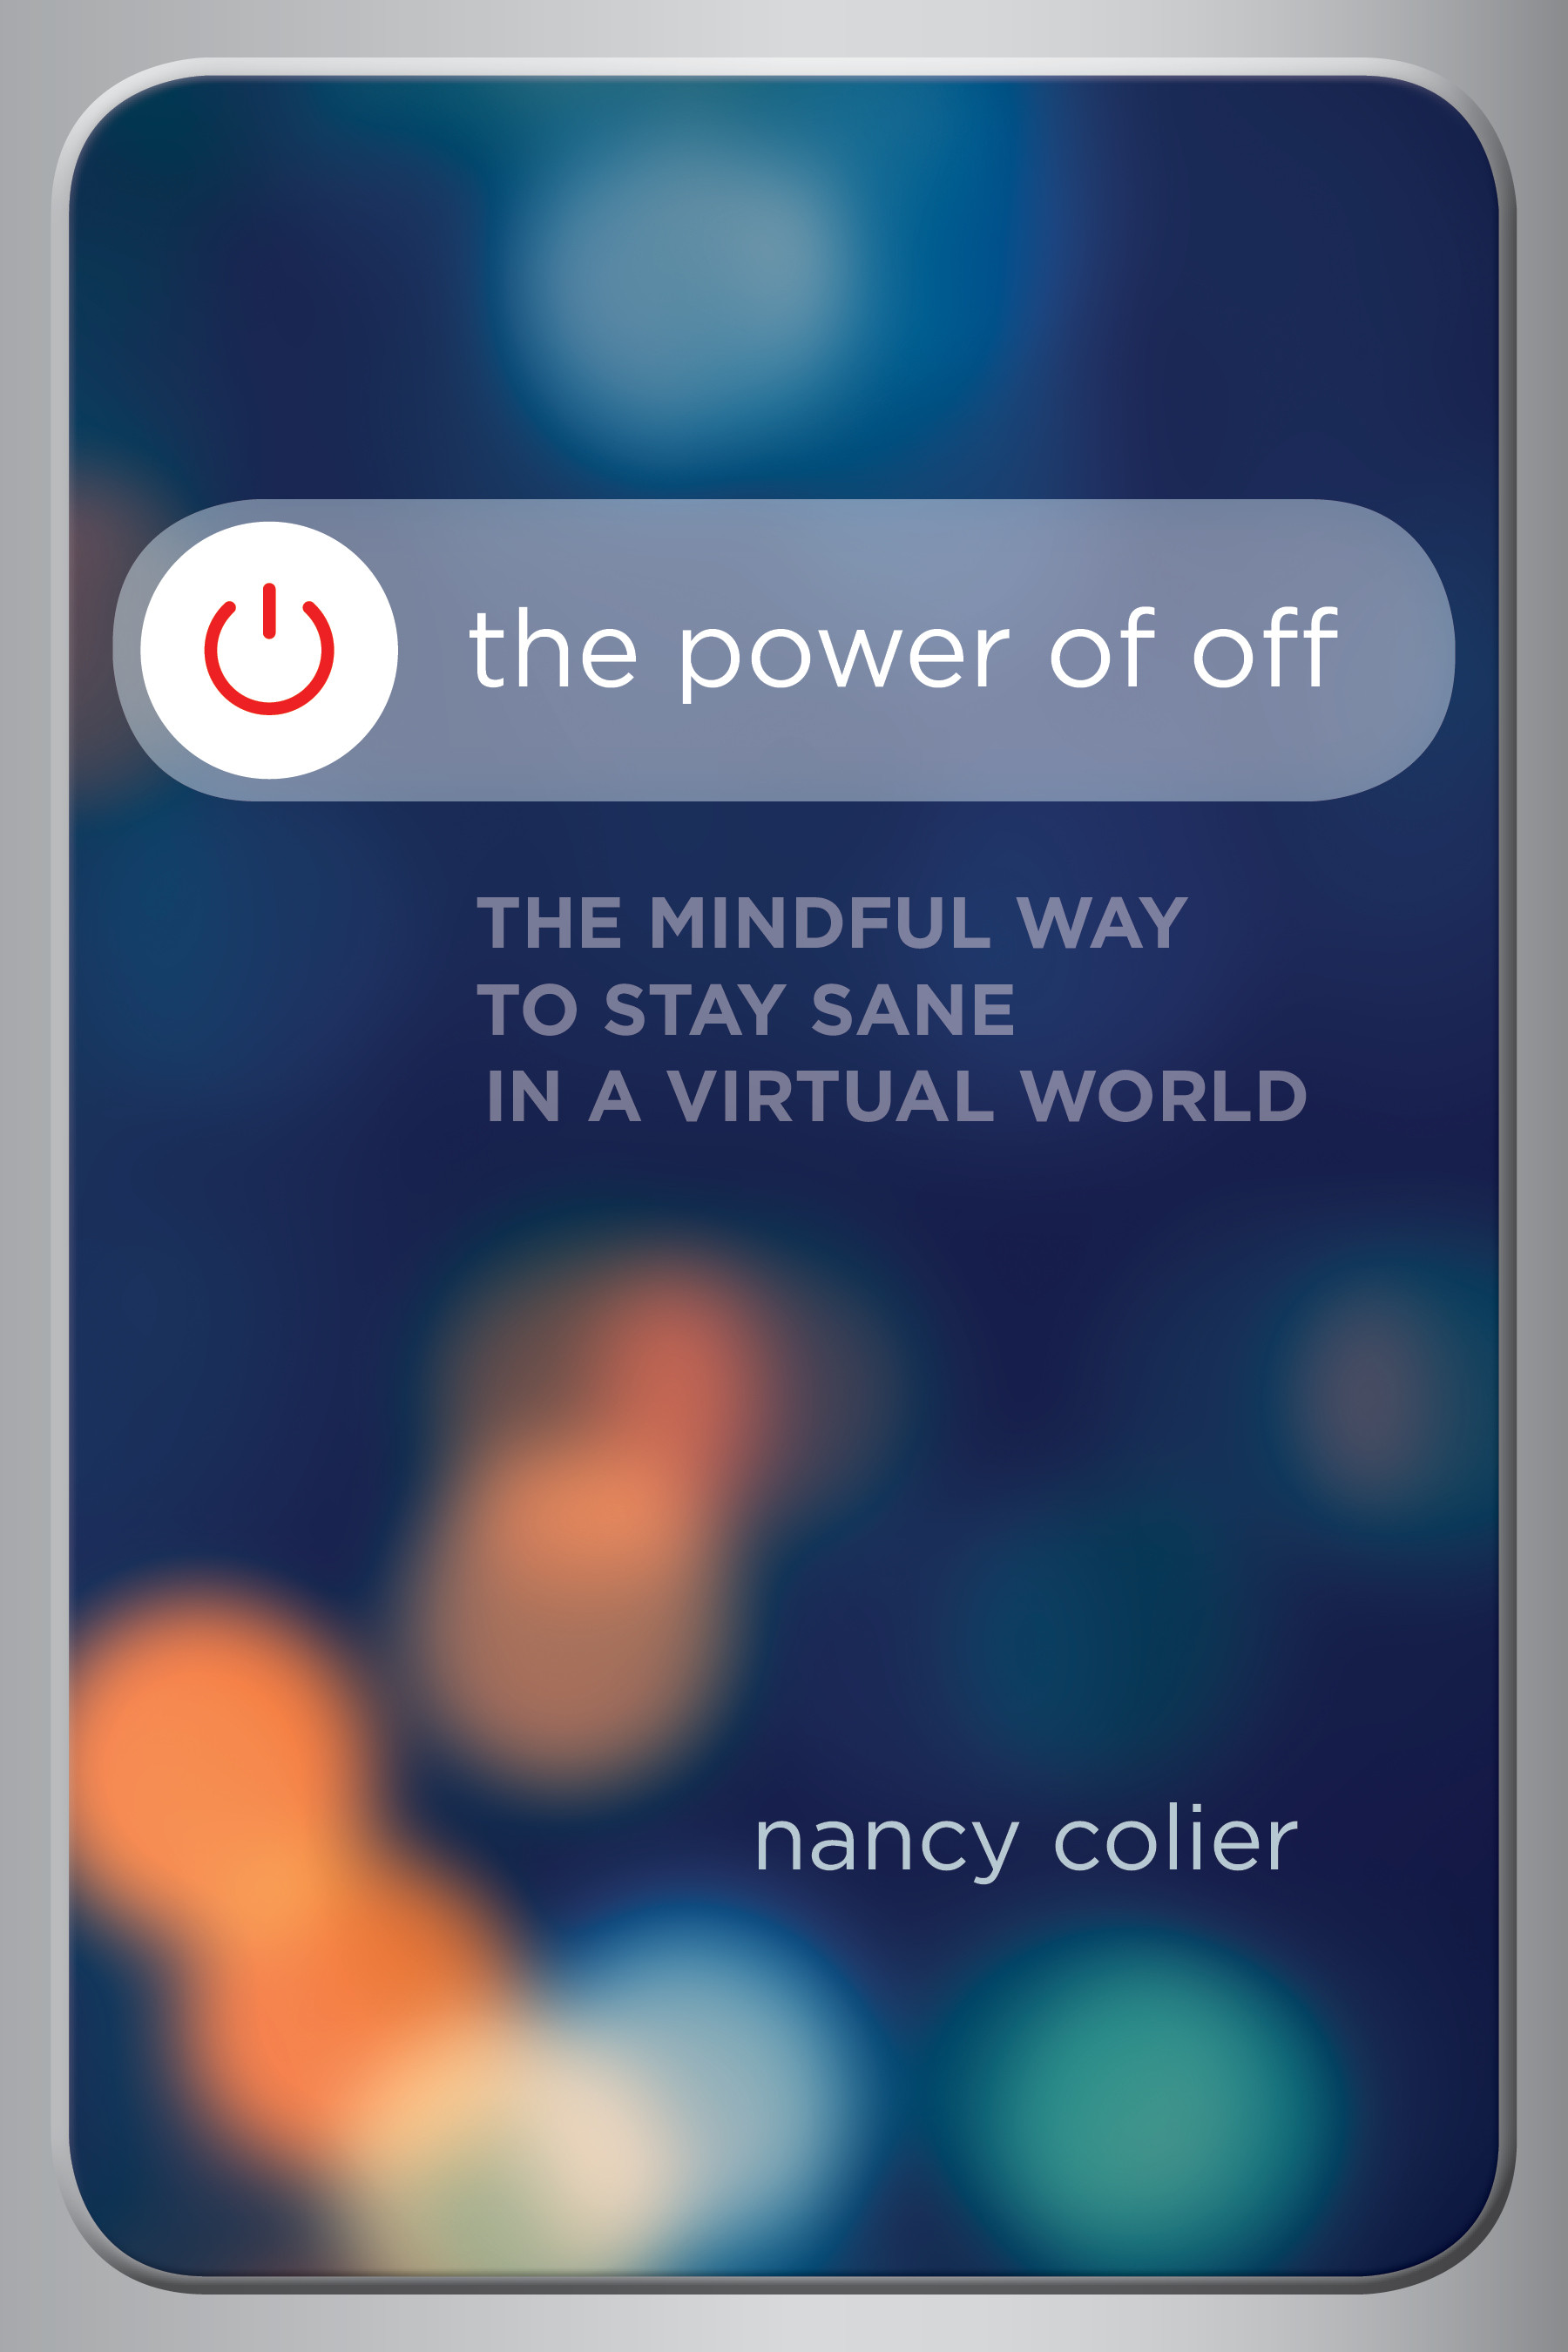 bk04934-power-of-off-published-cover_1.jpg